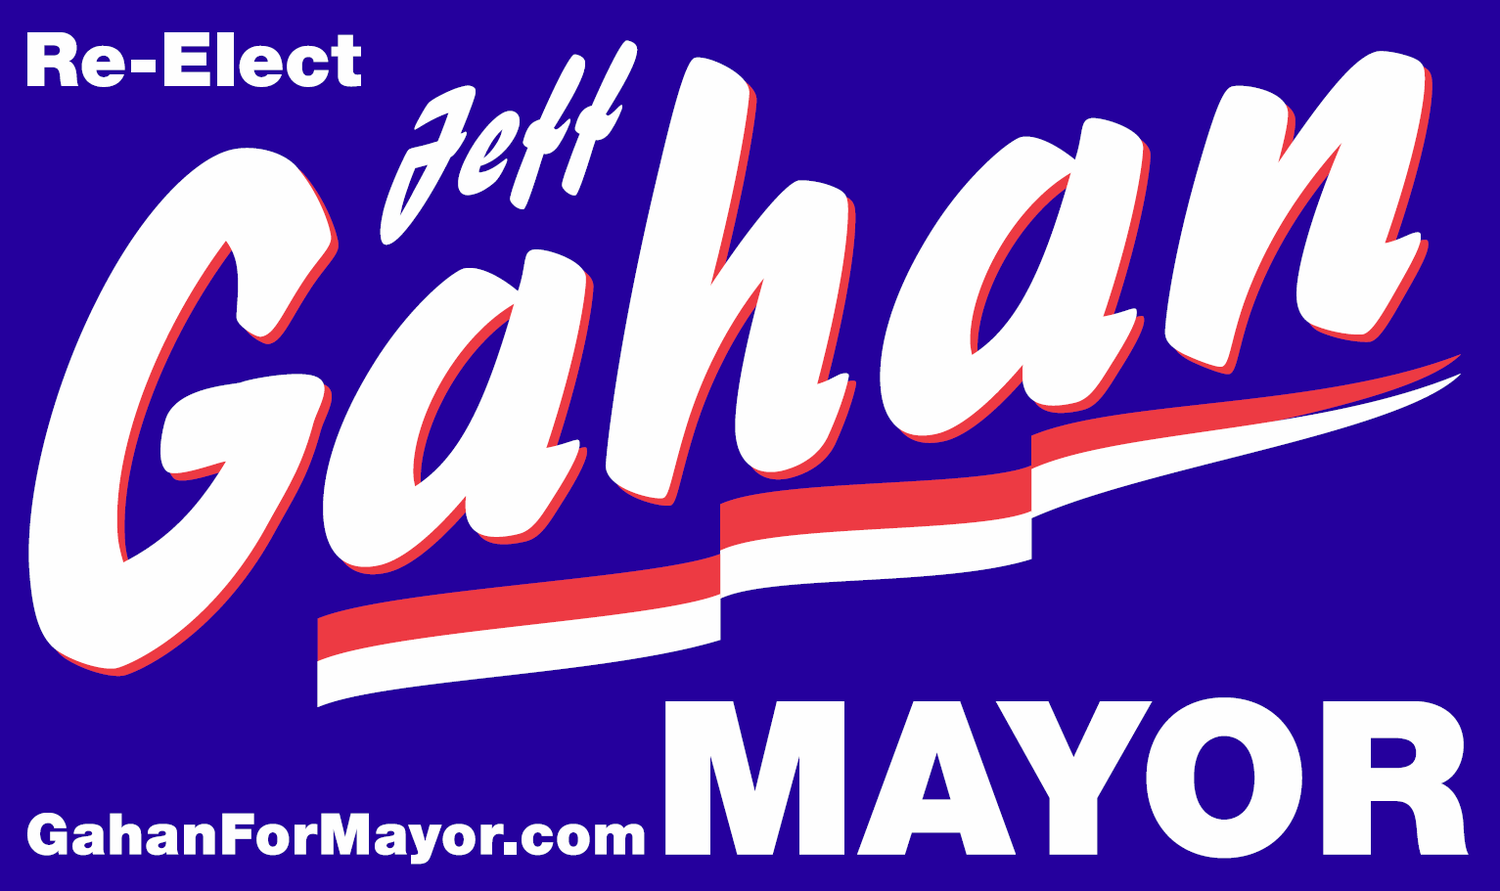 Gahan for Mayor